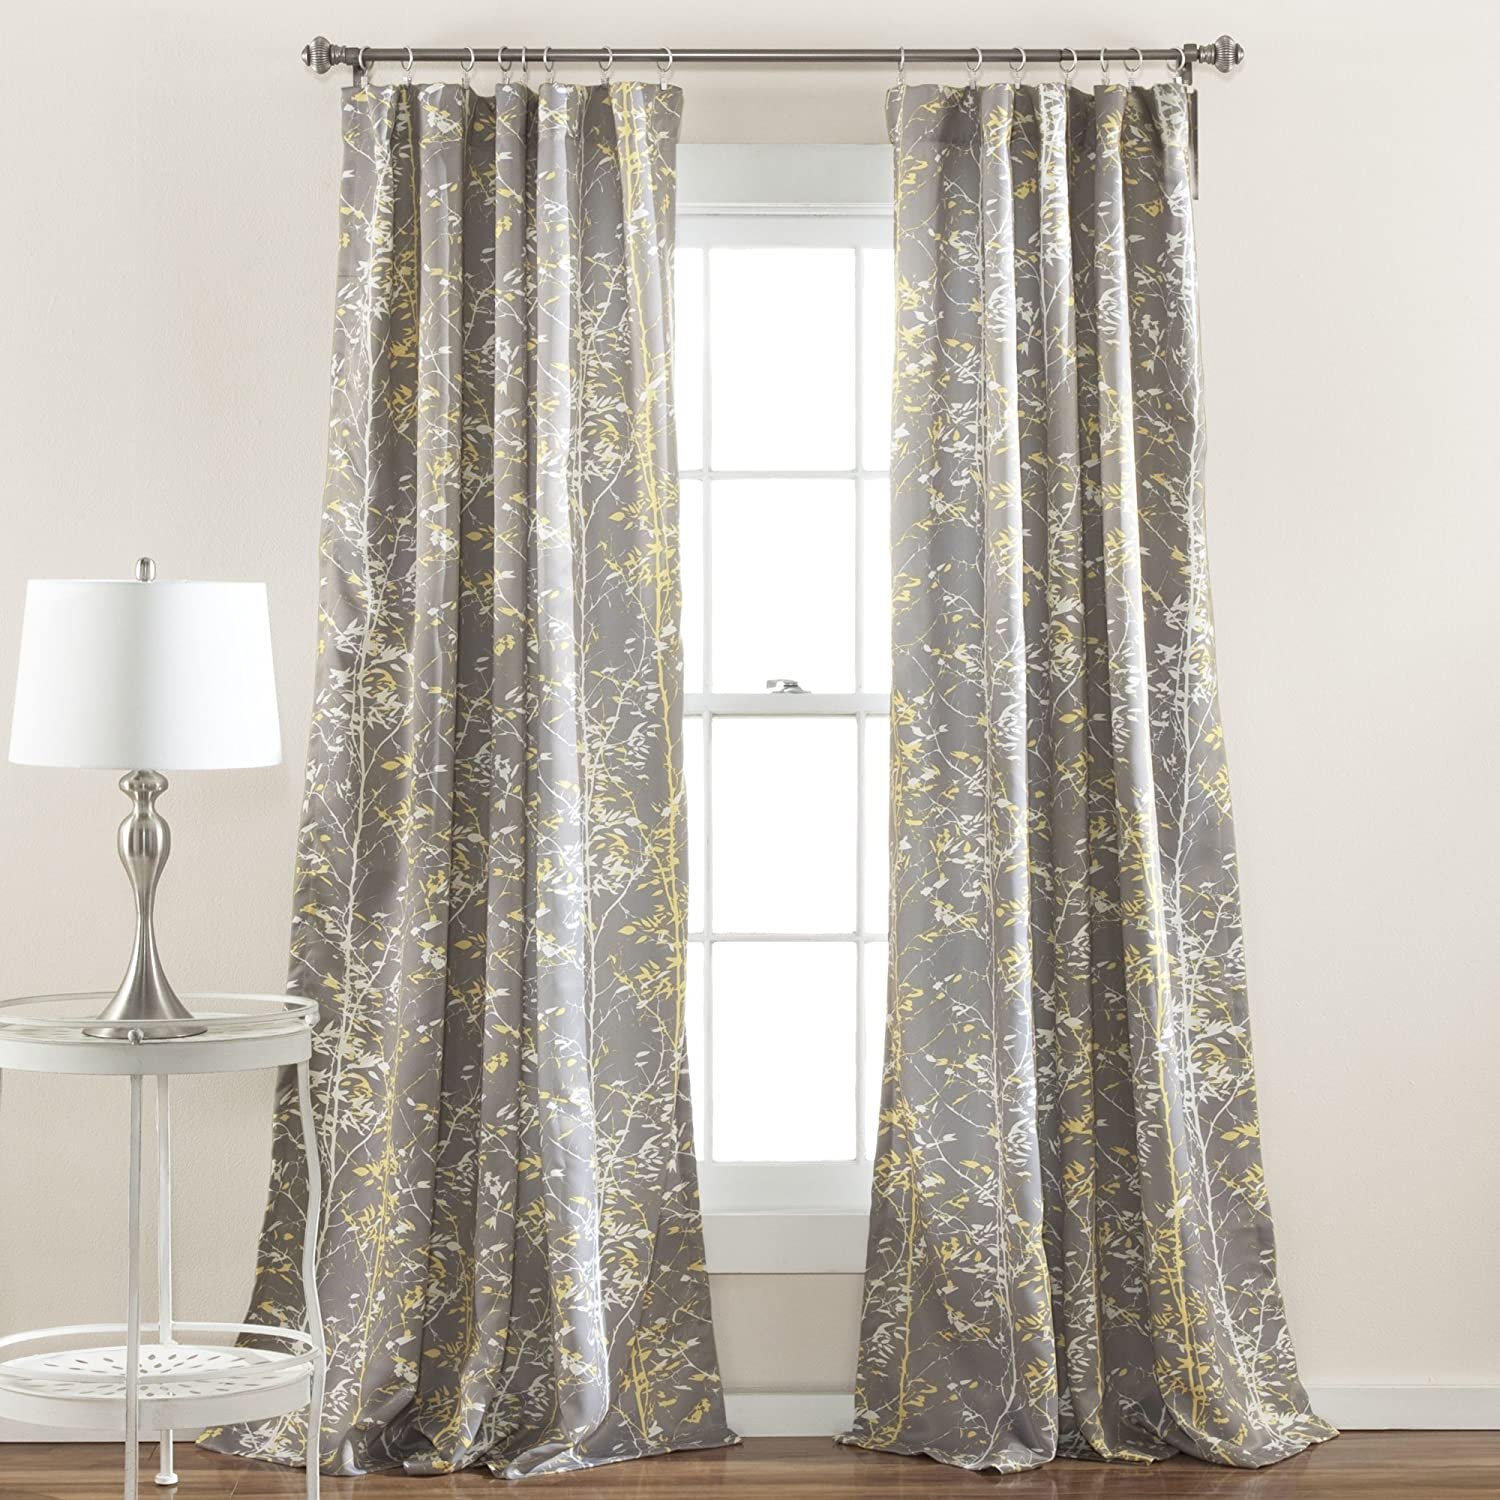 curtain and panel the to red images window brown of drapes gold yellow soft curtains delightful tips order for white